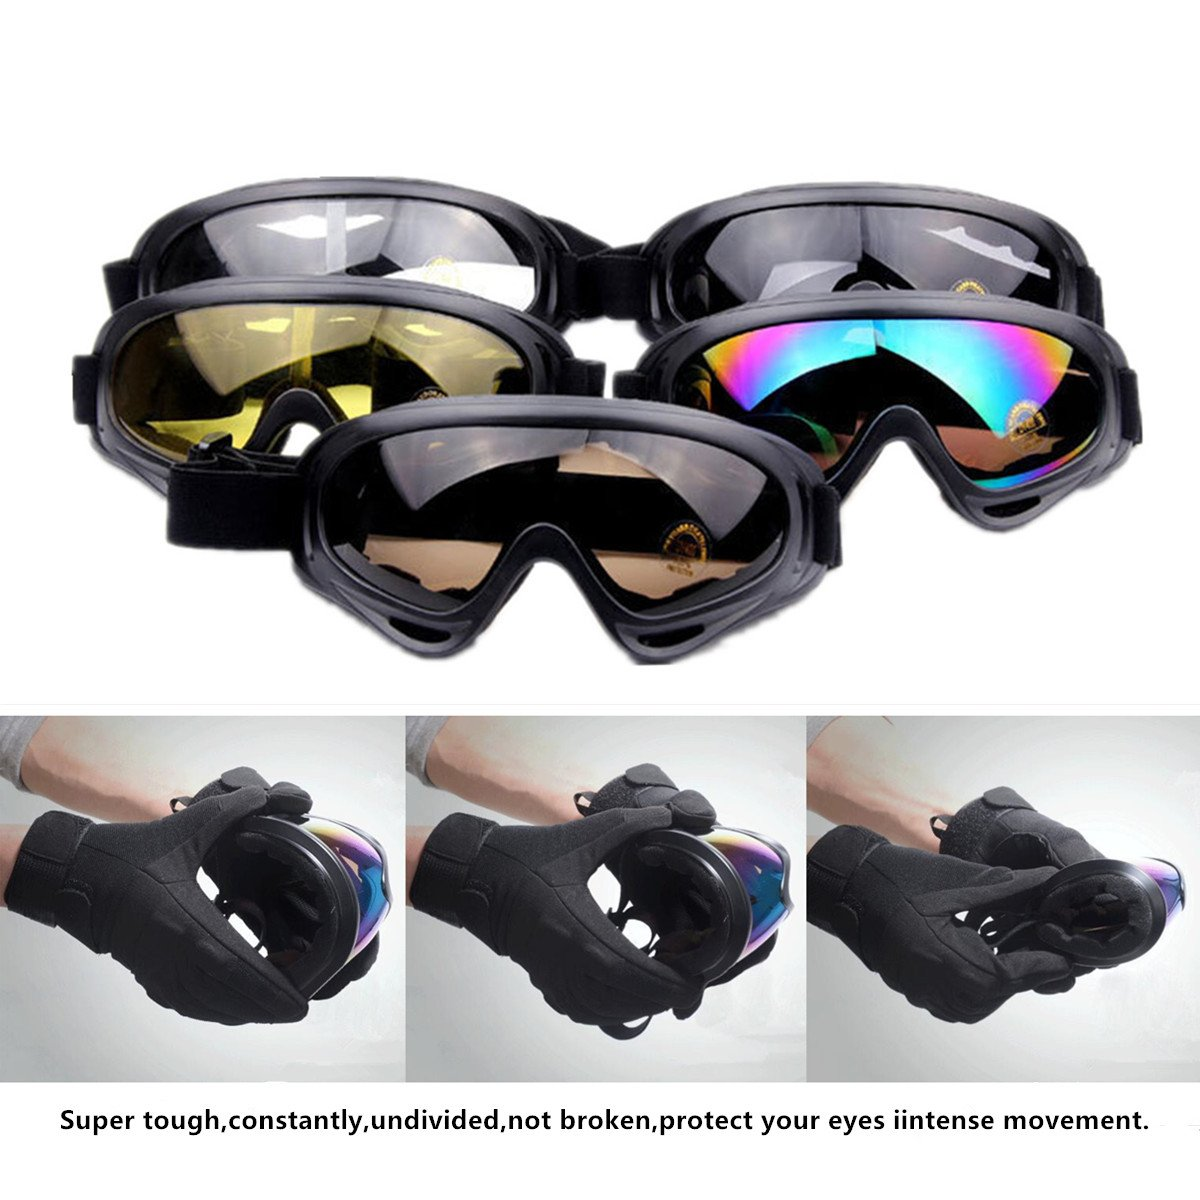 4-FQ Motorcycle Goggles, Dirt Bike Goggles Motorcycle Glasses Grip For Helmet,Adjustable UV Protective Windproof Dustproof Anti Fog Sunglasses for ATV Off Road Racing